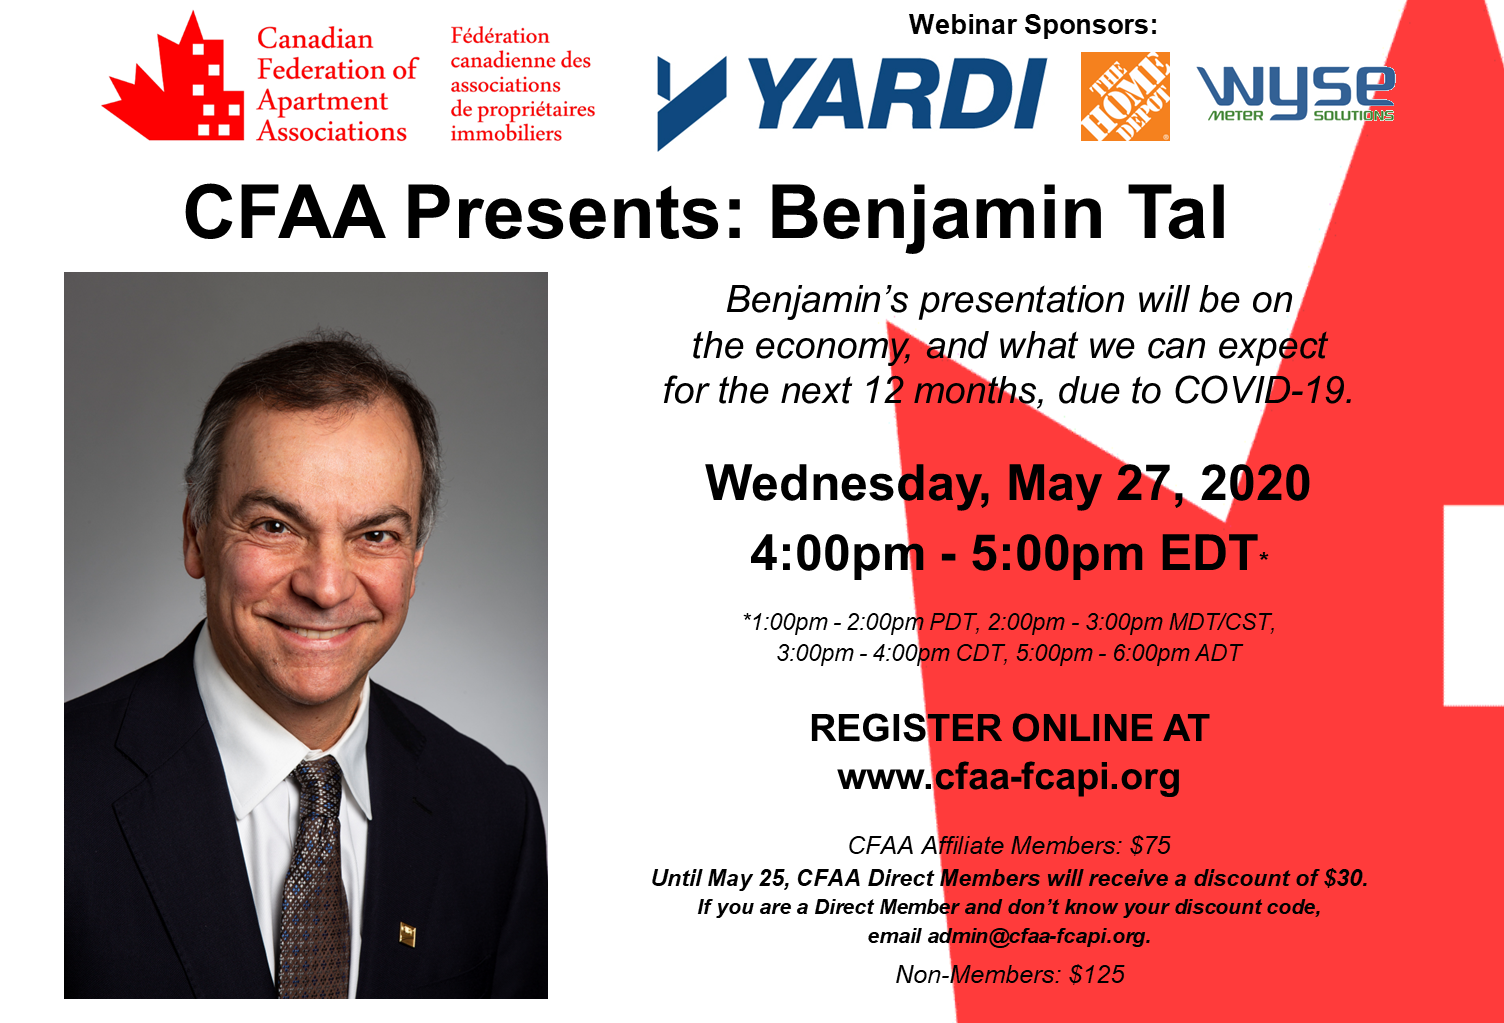 CFAA PRESENTS: BENJAMIN TAL